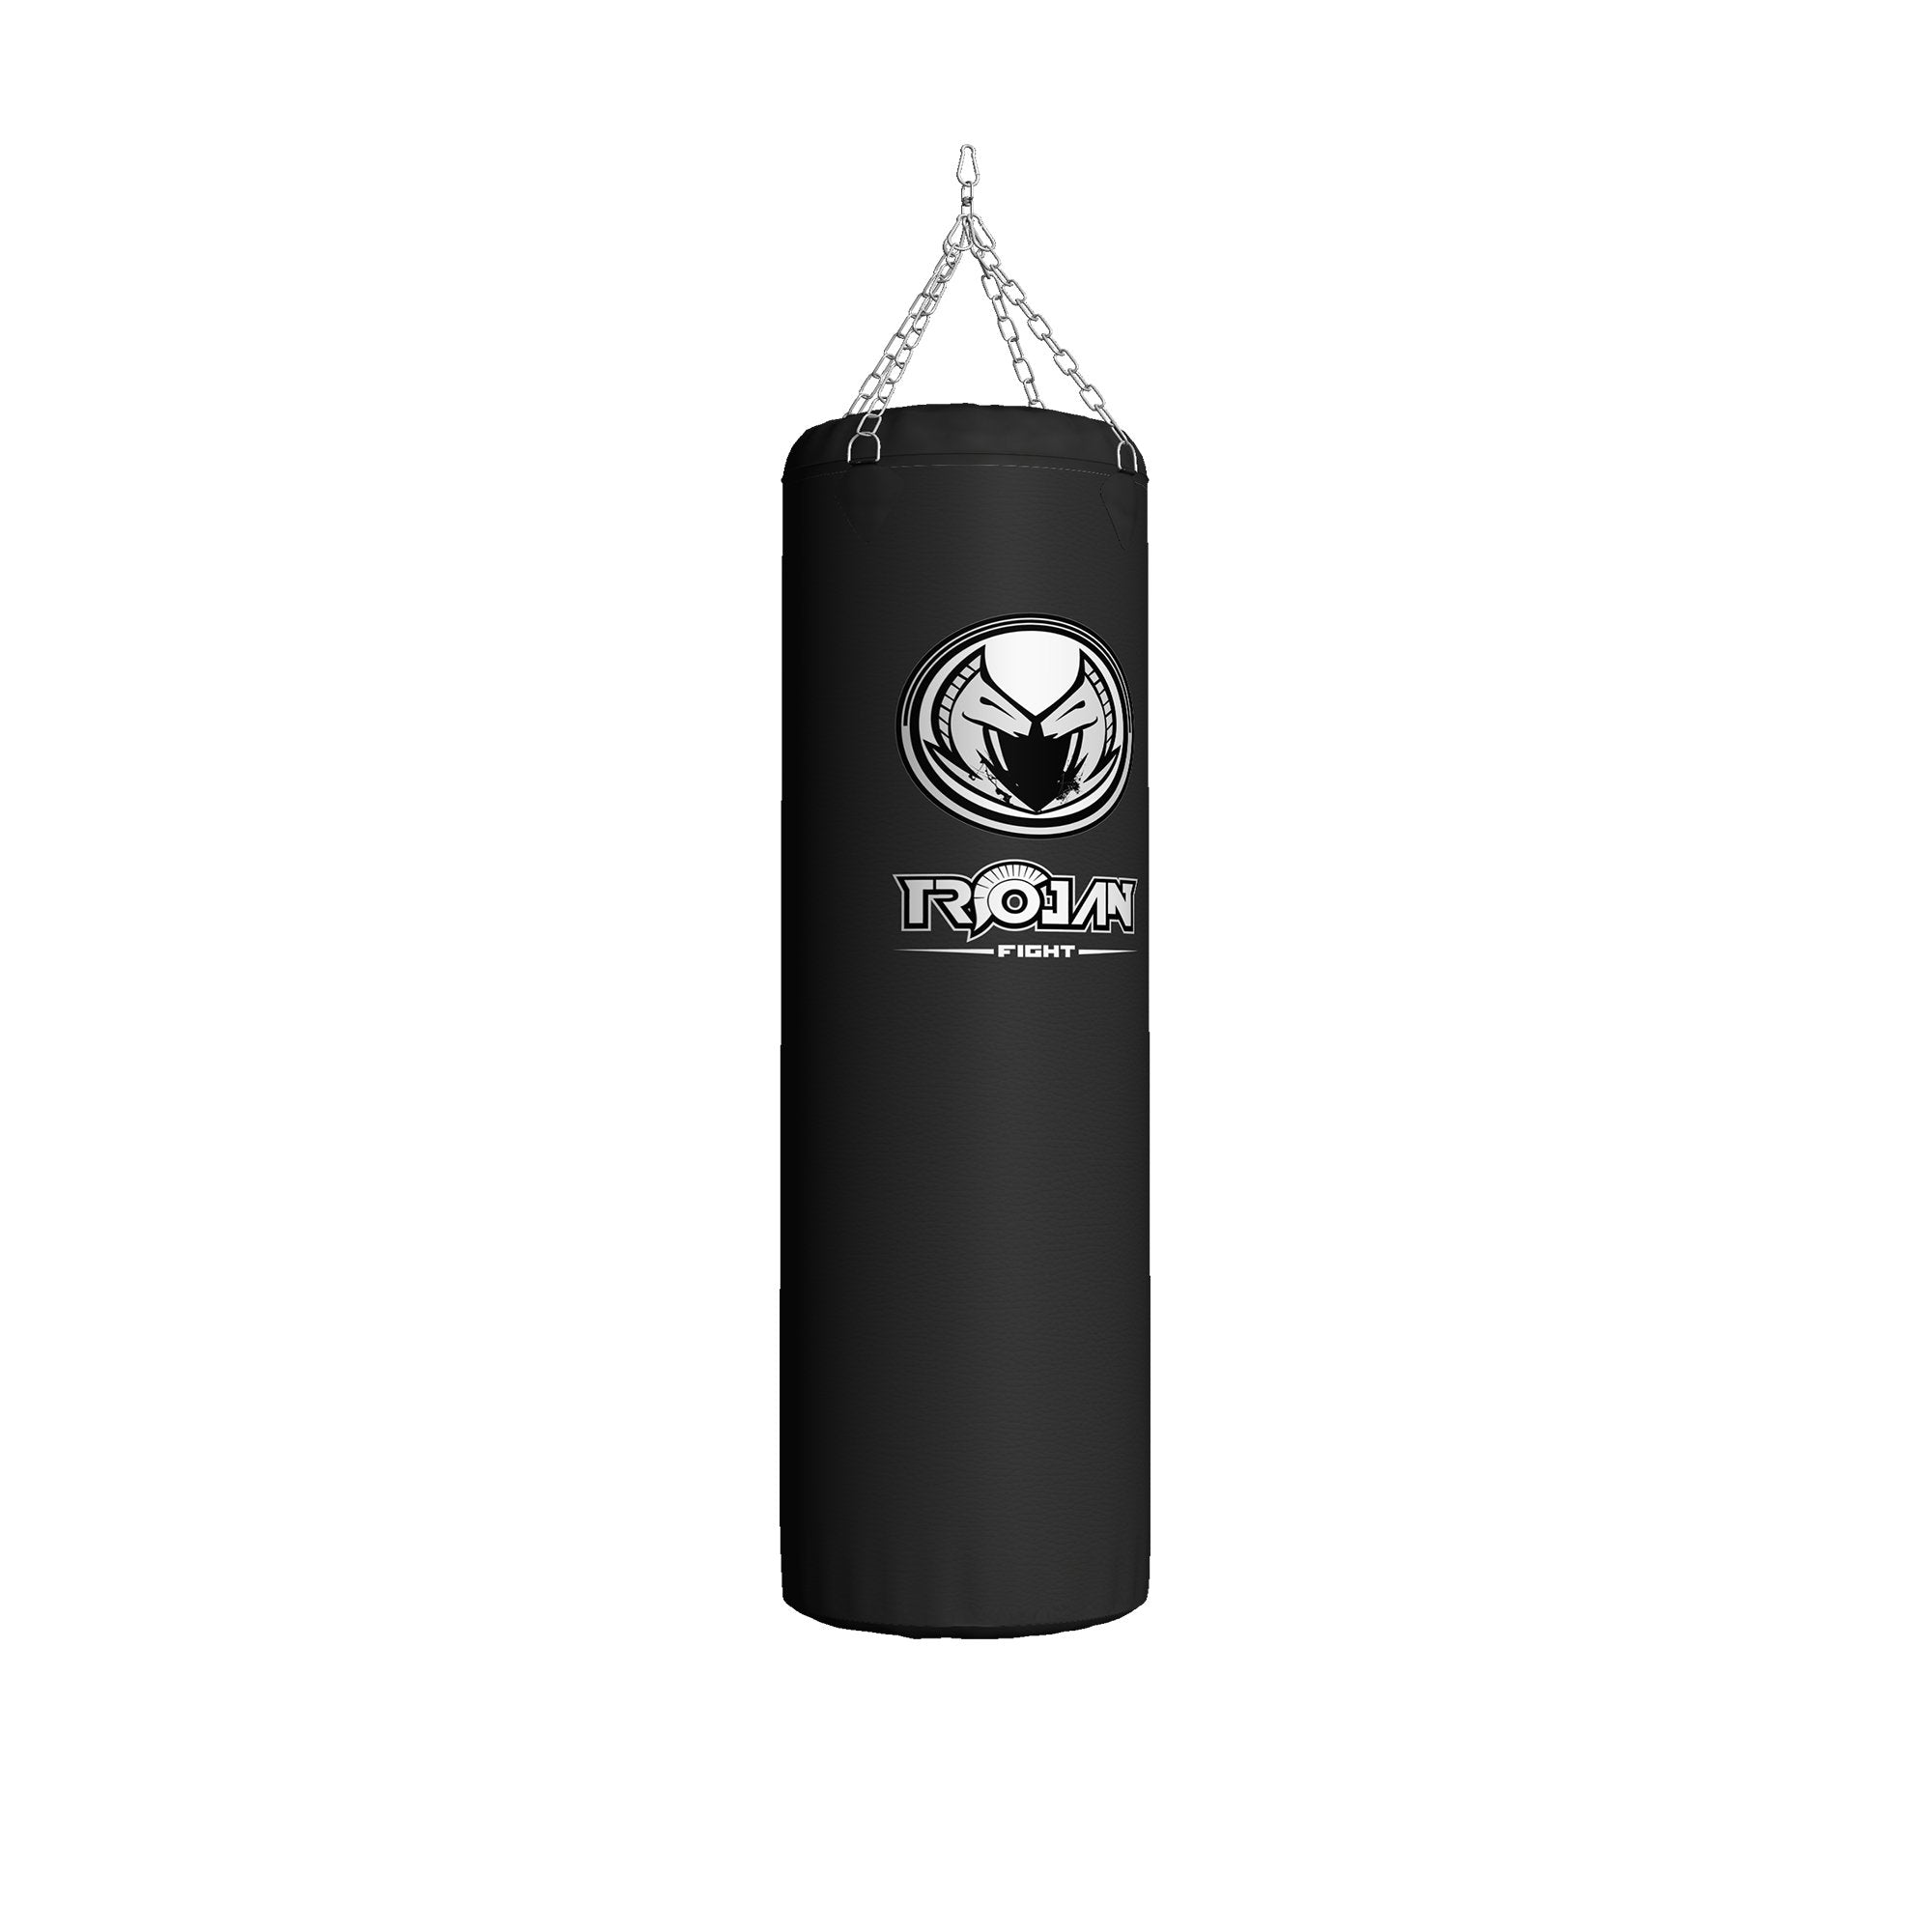 HEAVY BAG 45DIAM | PRO 30KG - Trojan Fight.com | TrojanFight Boxing